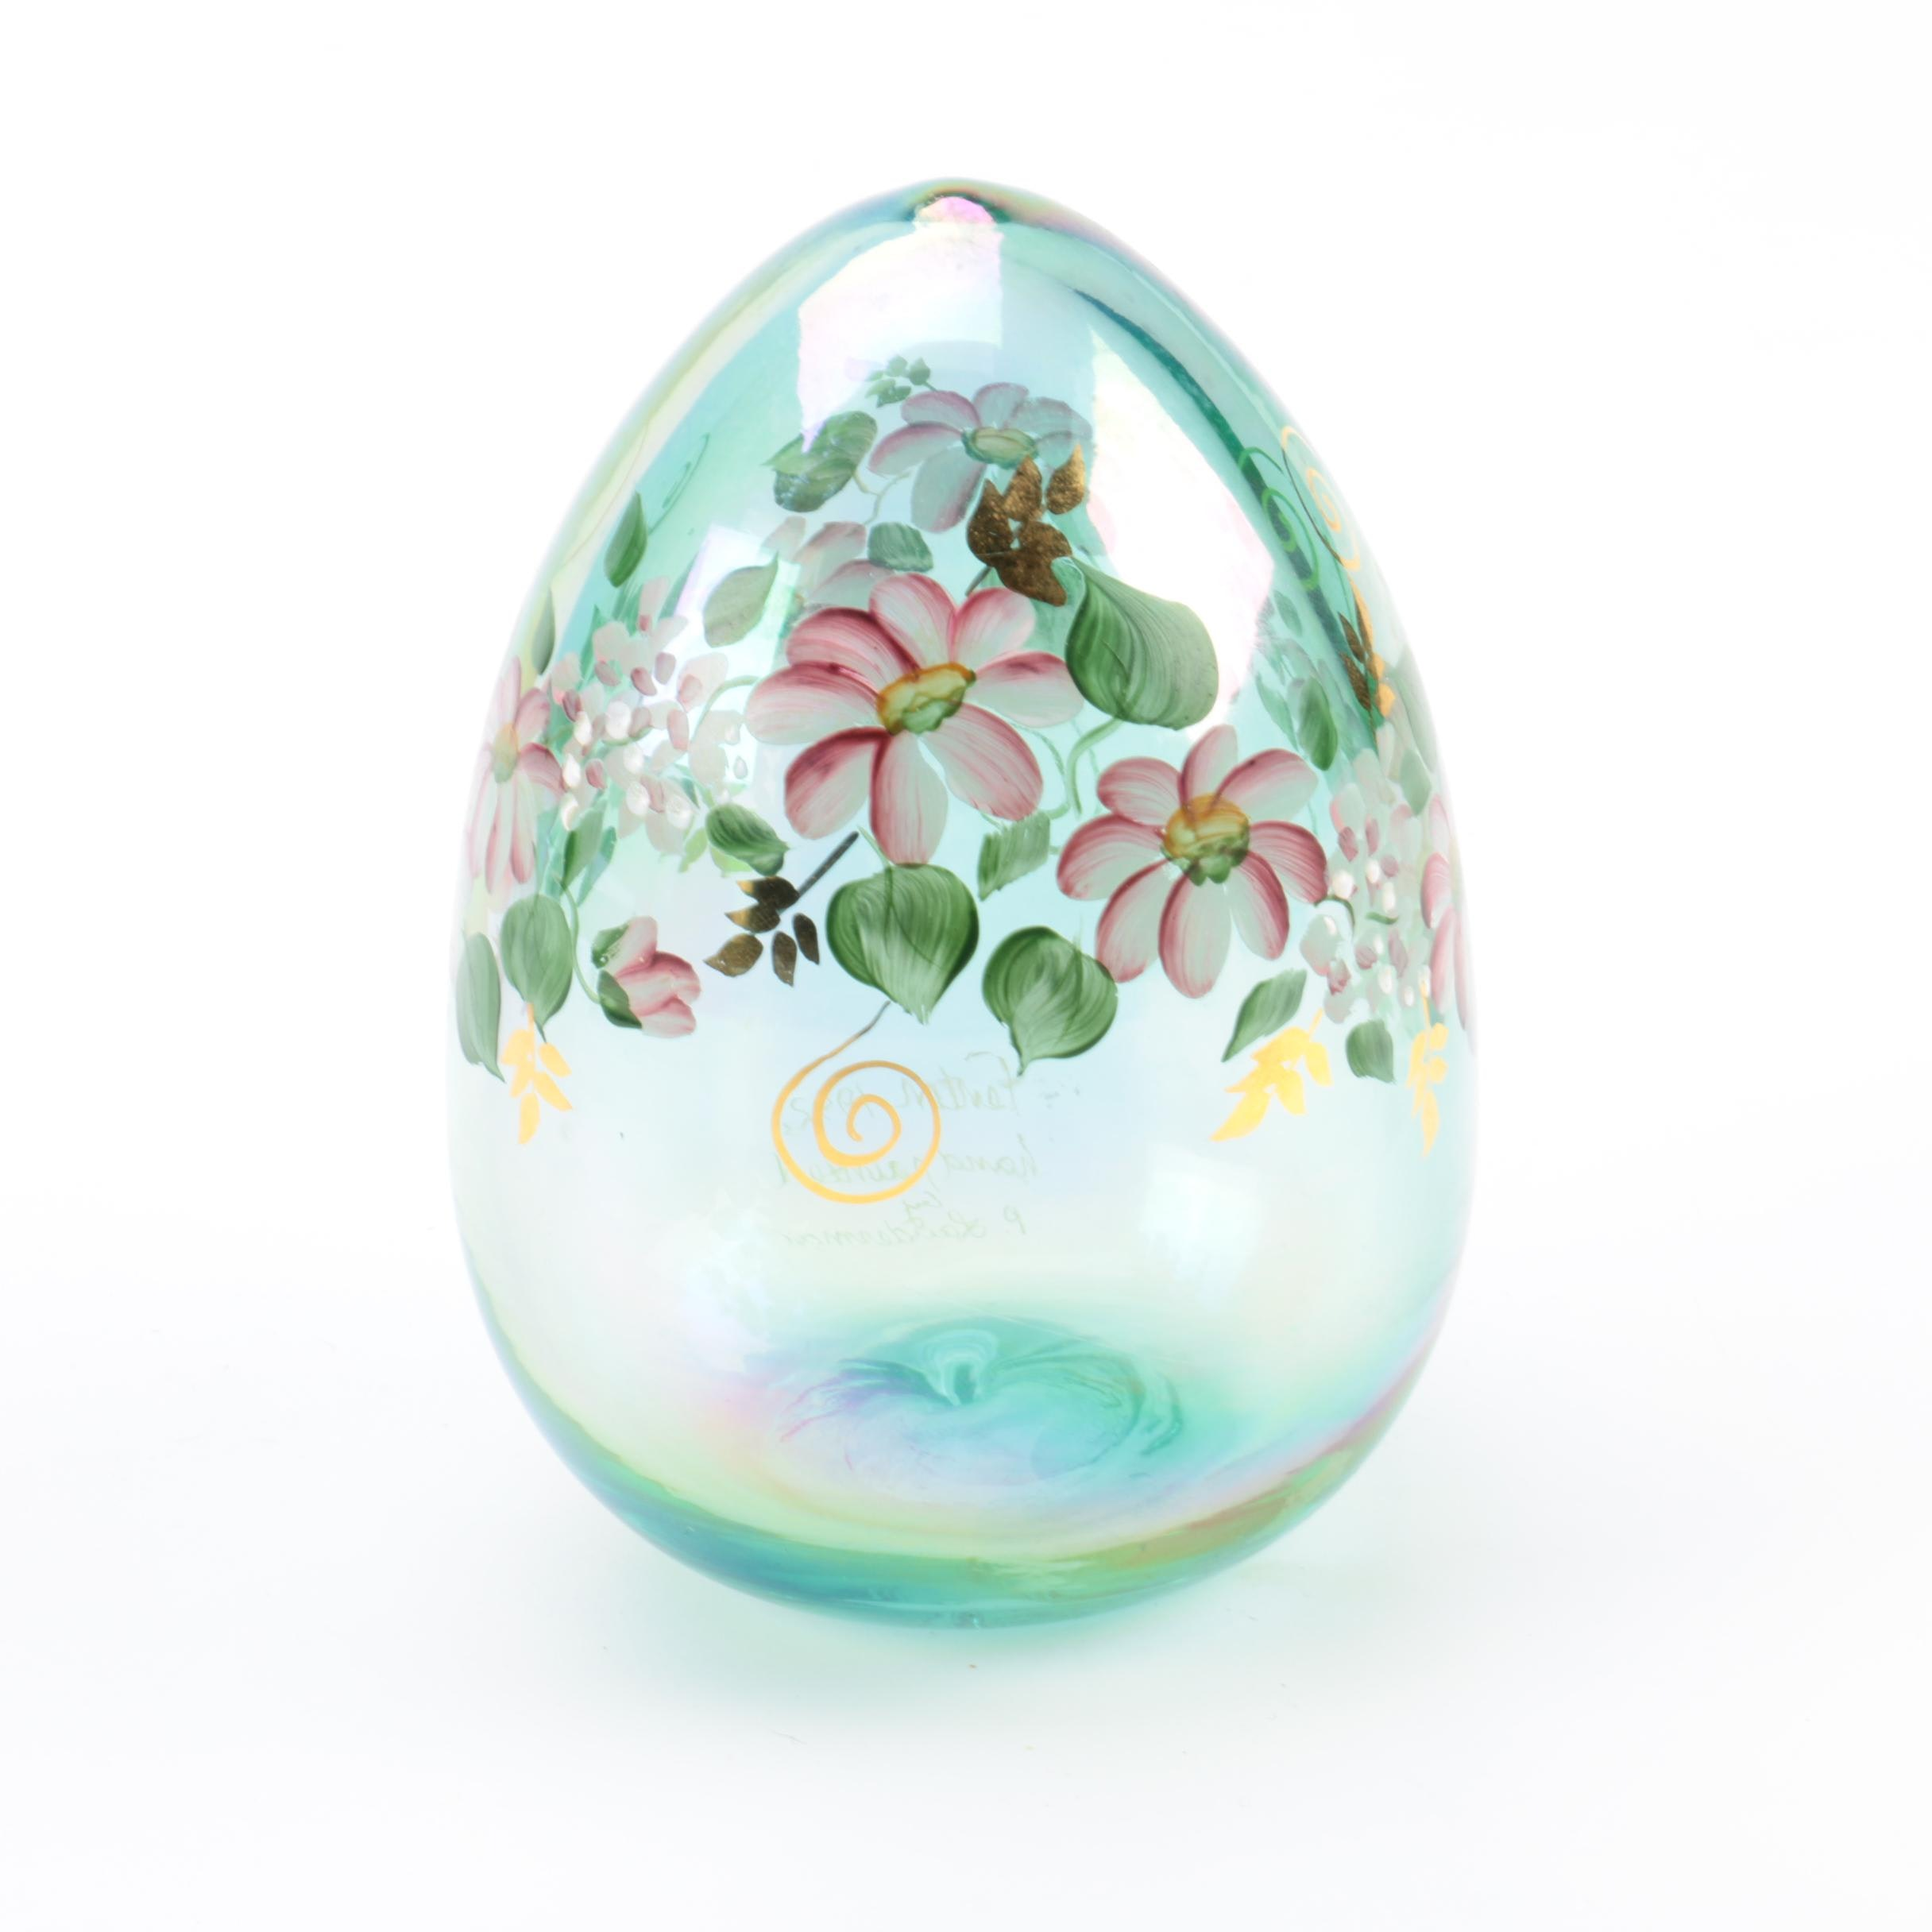 Fenton Hand Blown and Painted Glass Egg